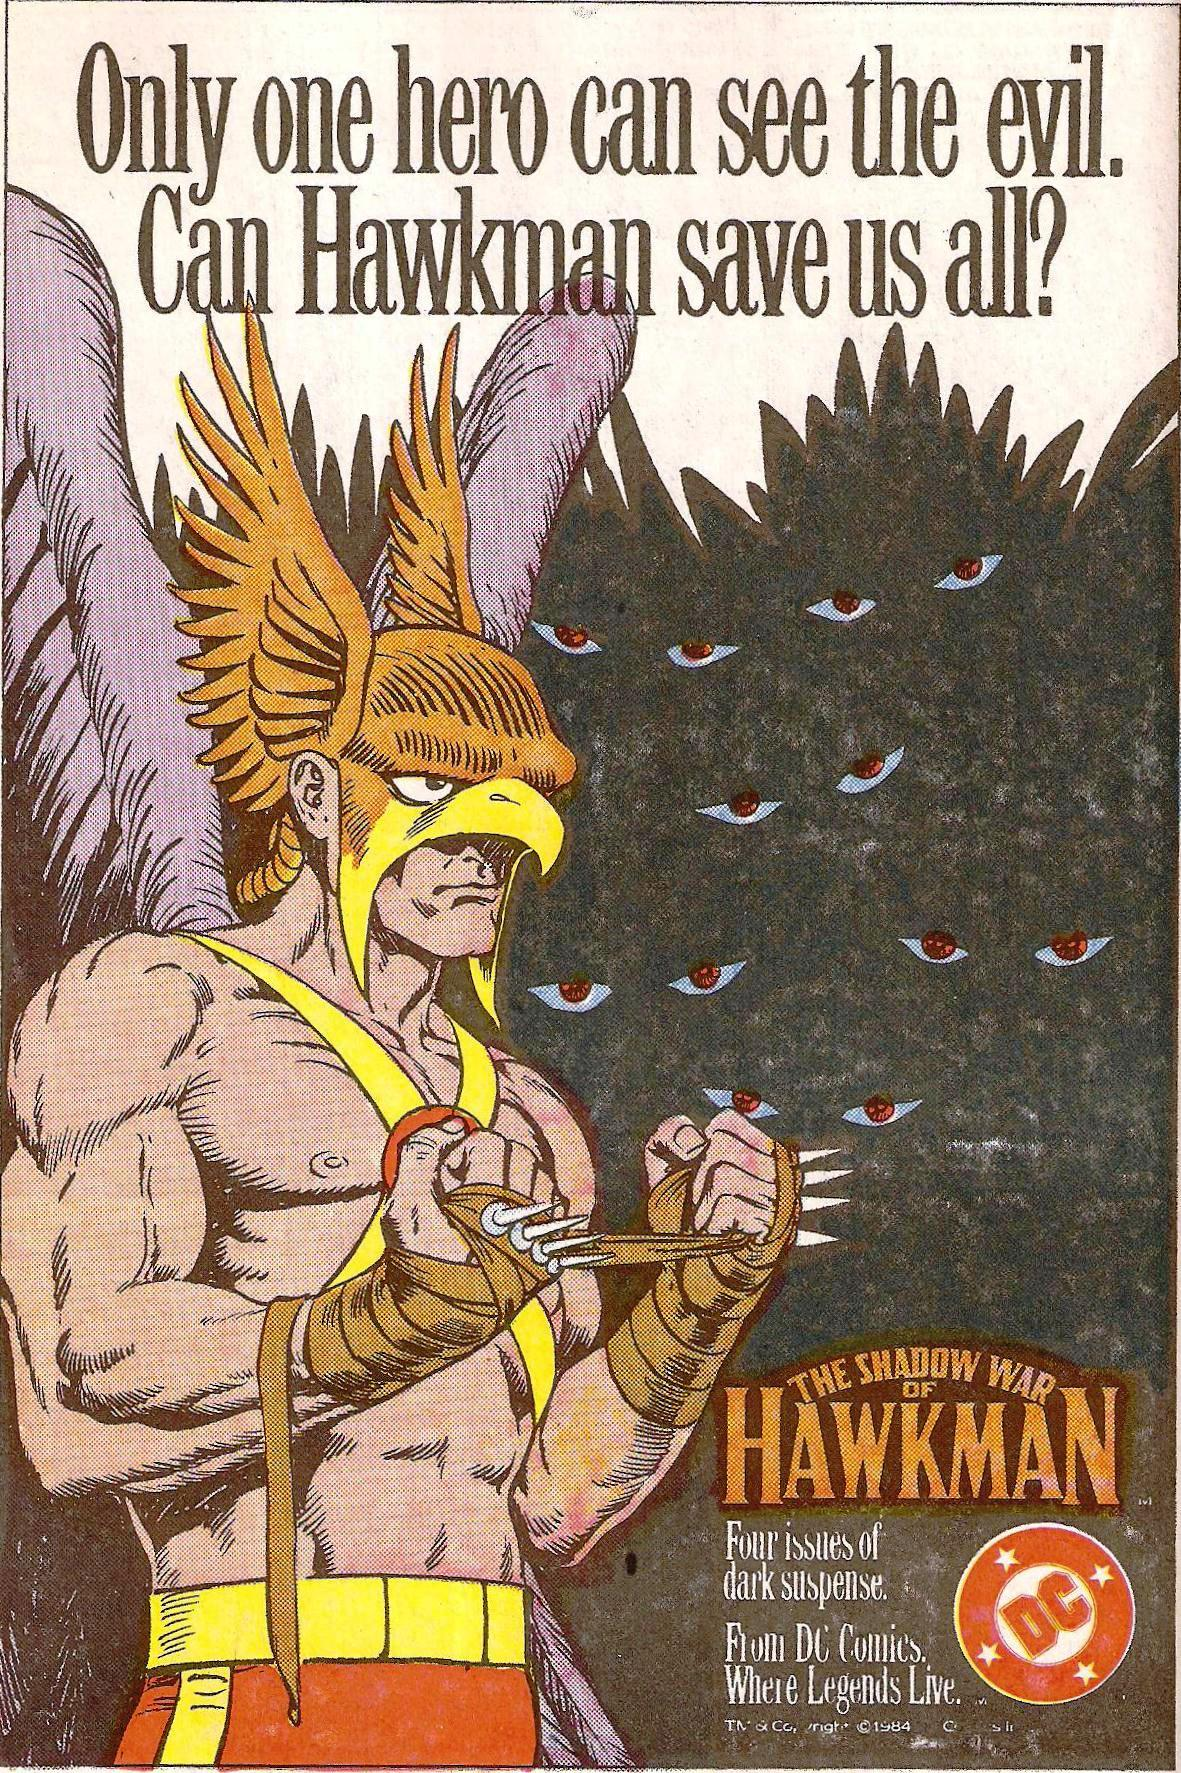 The-Shadow-War-of-Hawman-In-House-Ad-1985